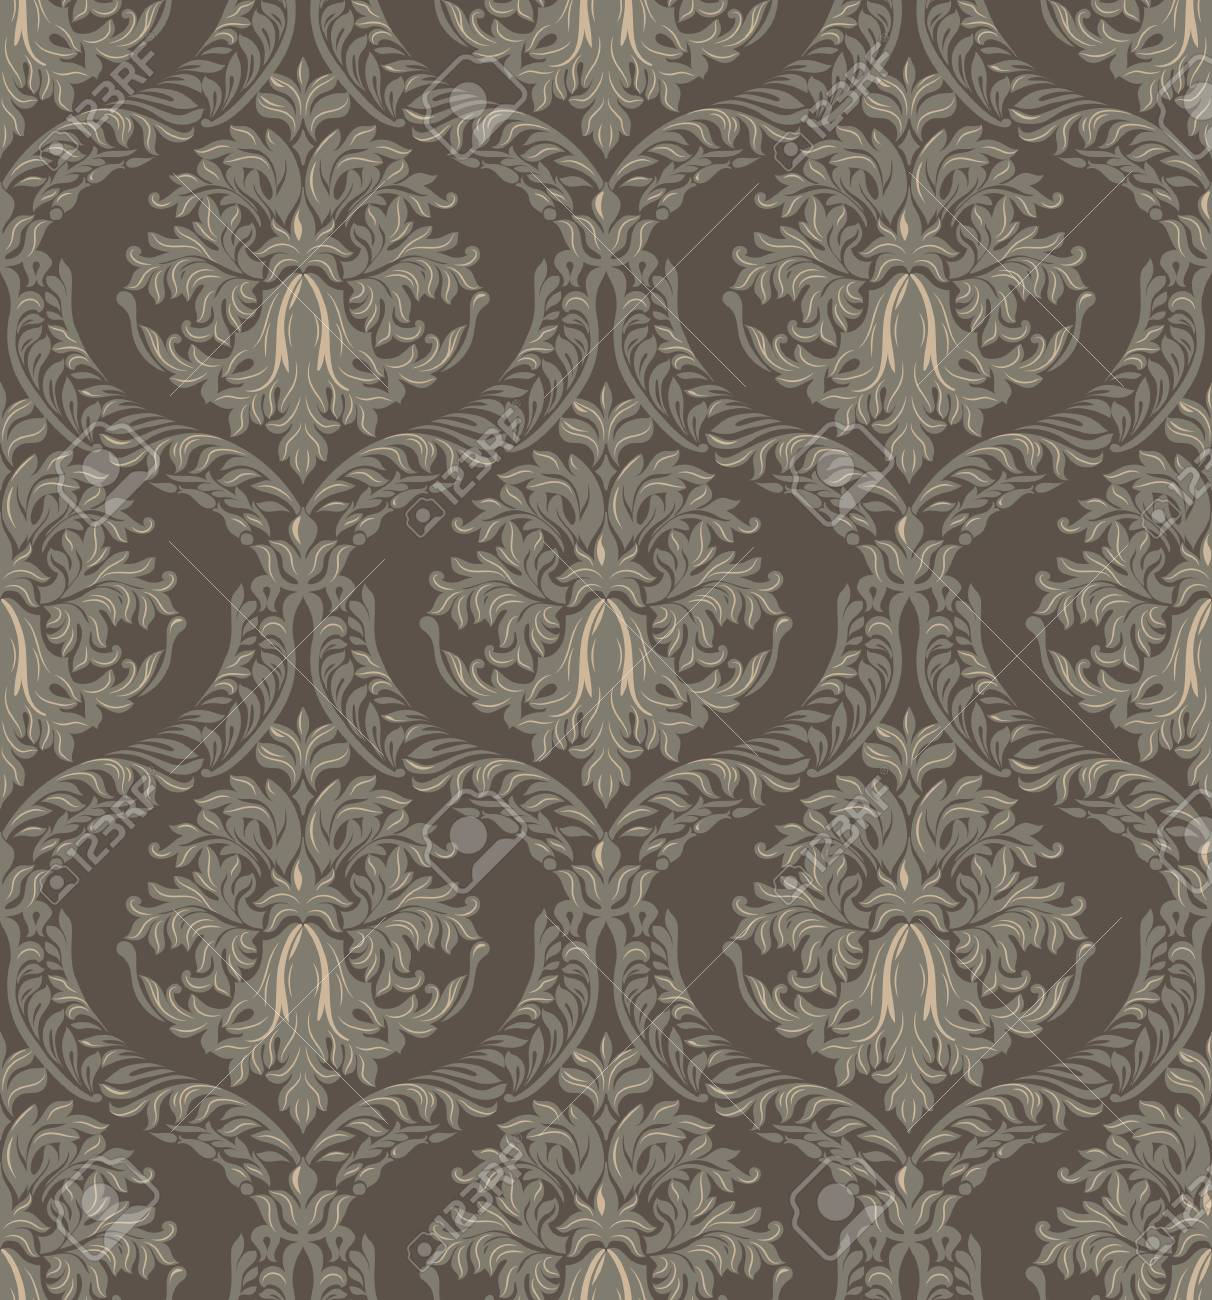 Damask 8x10 FT Photo Backdrops,Ornamental Symmetric Antique Motif with Classical Elements Baroque Swirls Curves Background for Party Home Decor Outdoorsy Theme Vinyl Shoot Props Cream Sepia